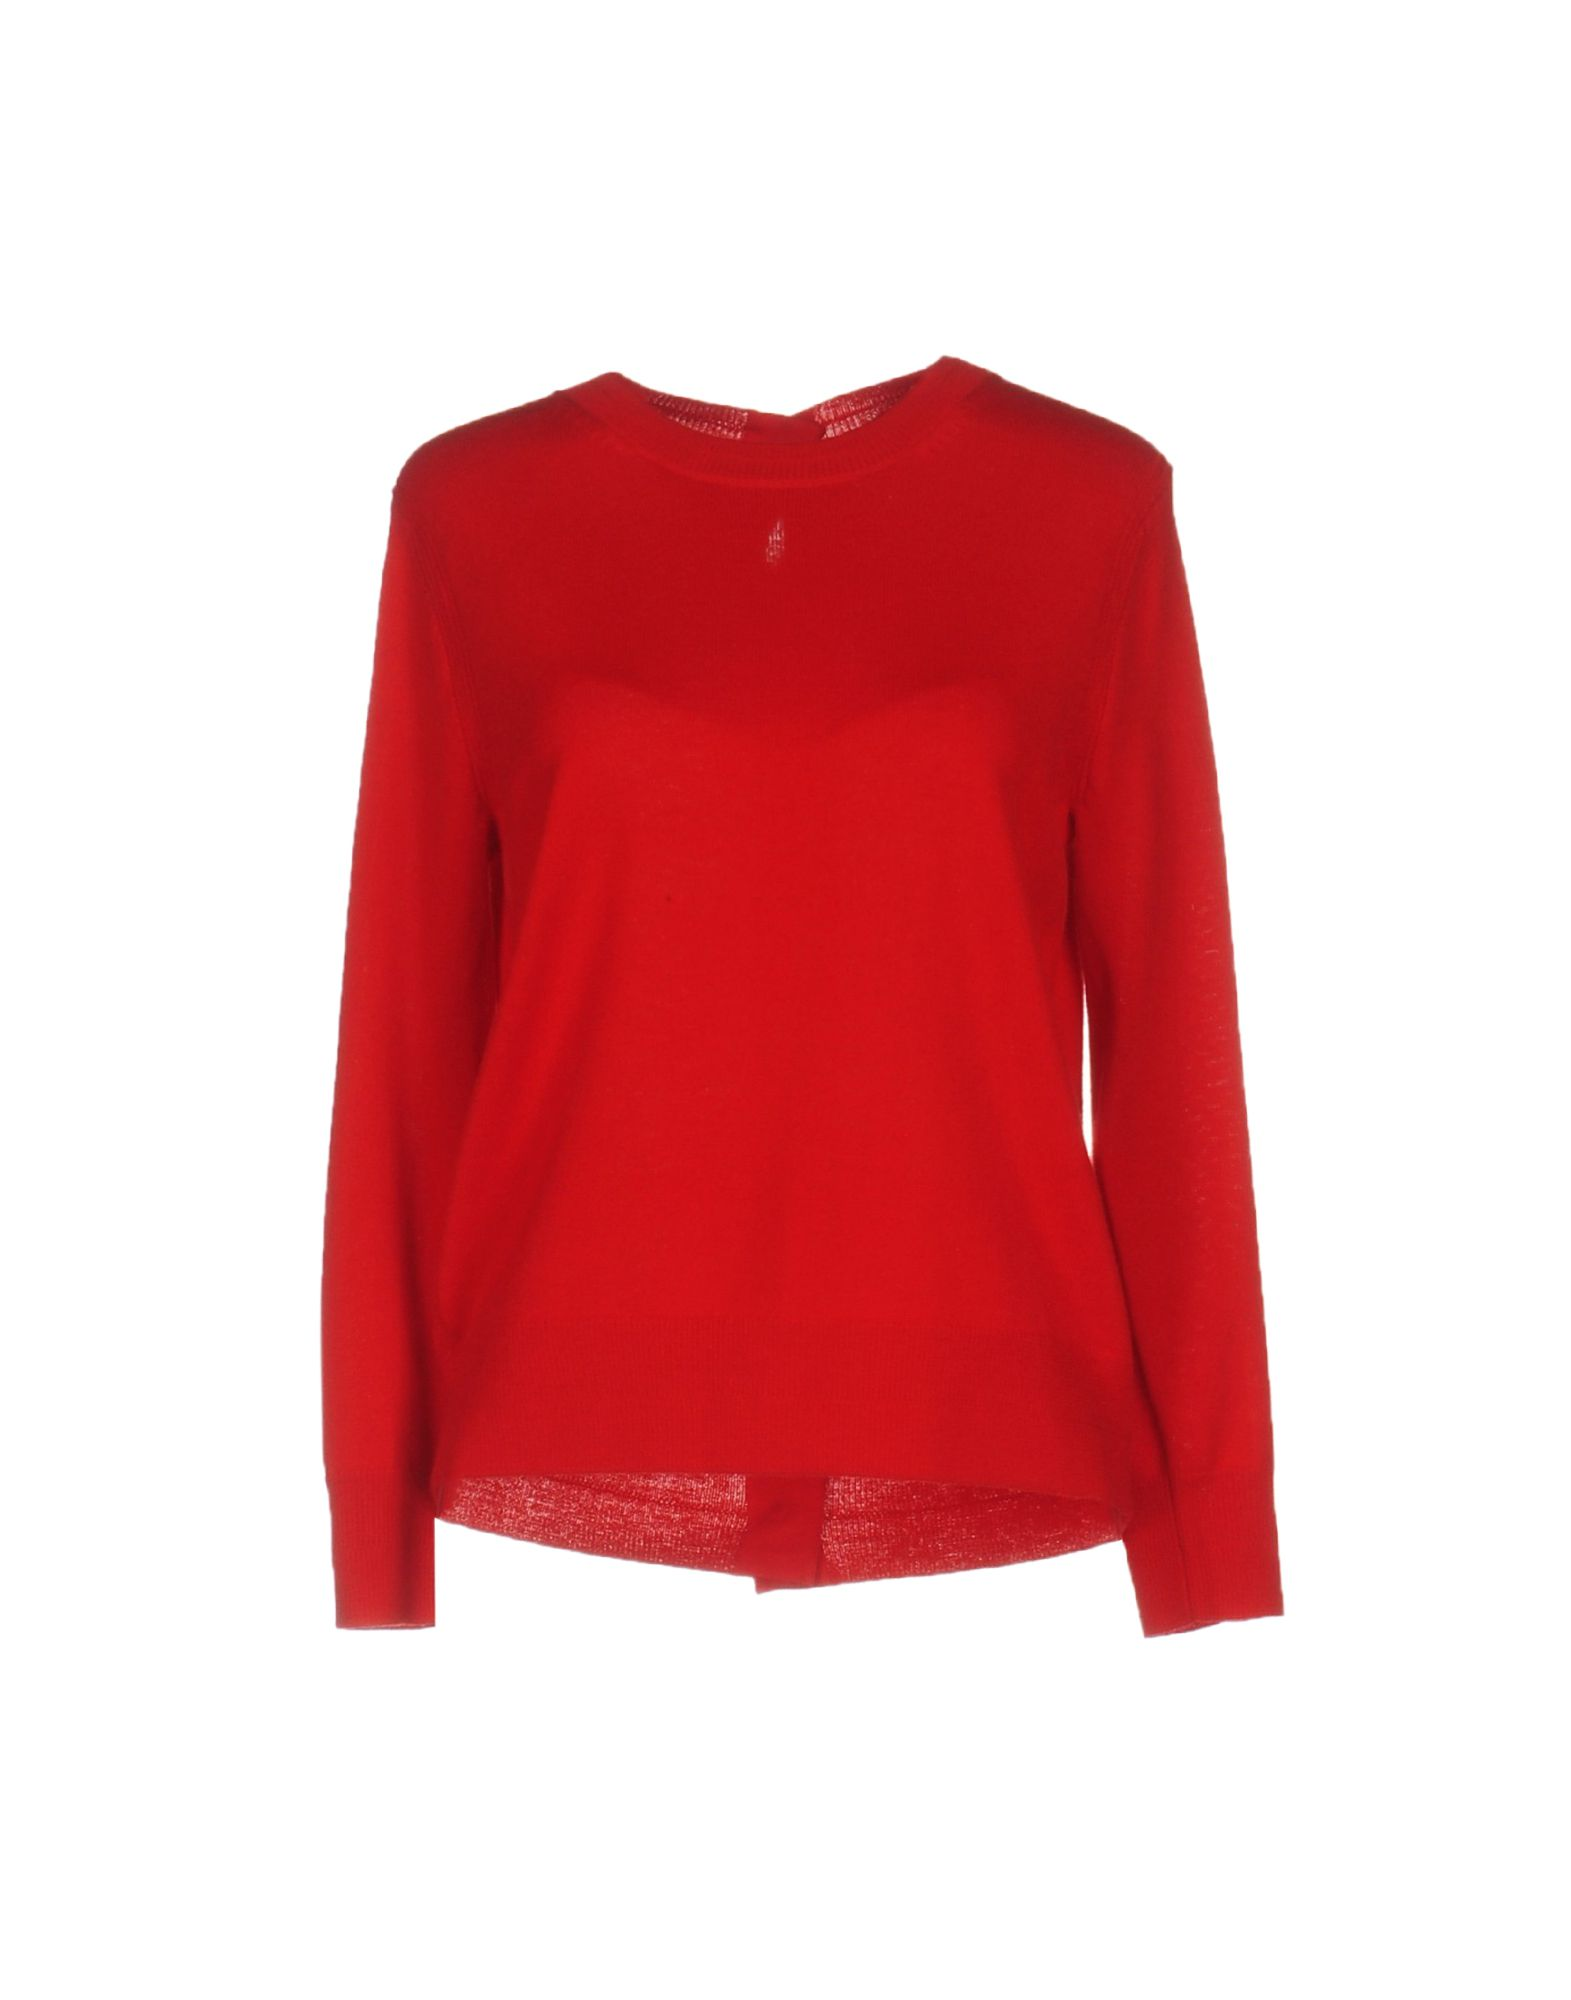 Pullover Marc Jacobs Donna - Acquista online su J8qY8DY6tH